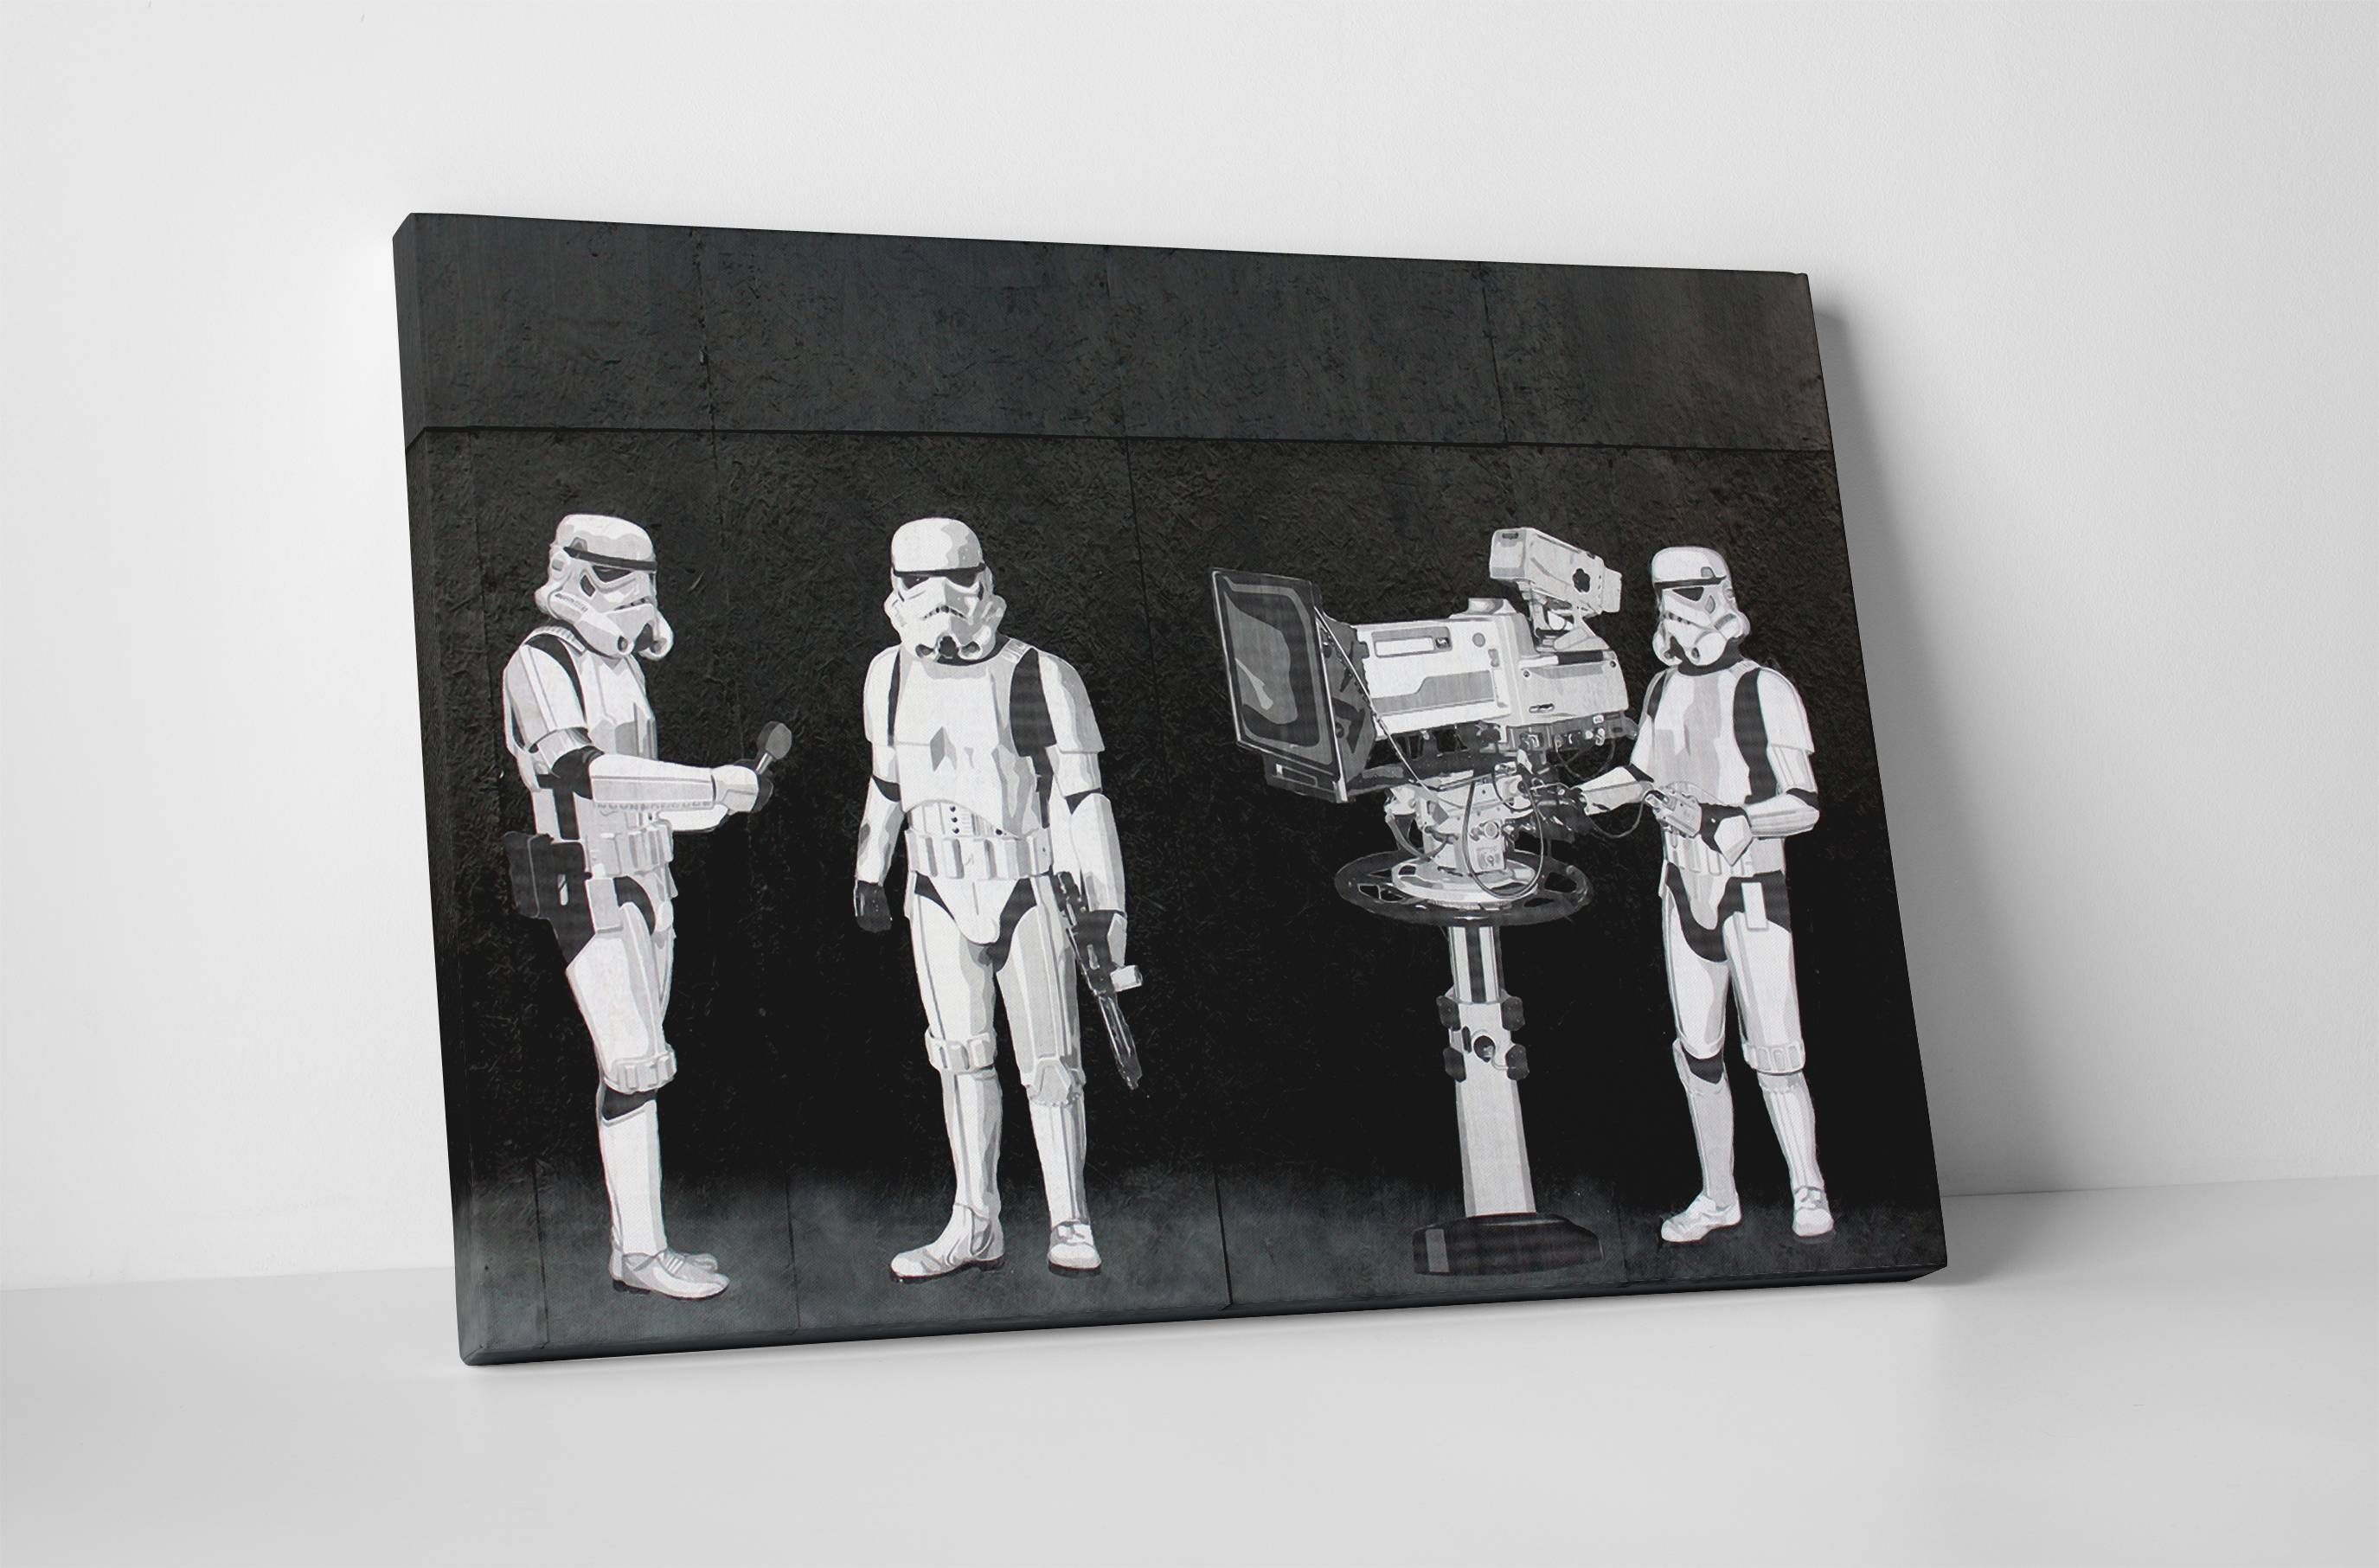 Banksy Stormtroopers Filming Oscars Canvas Wall Art In Most Recently Released Banksy Wall Art Canvas (View 11 of 20)